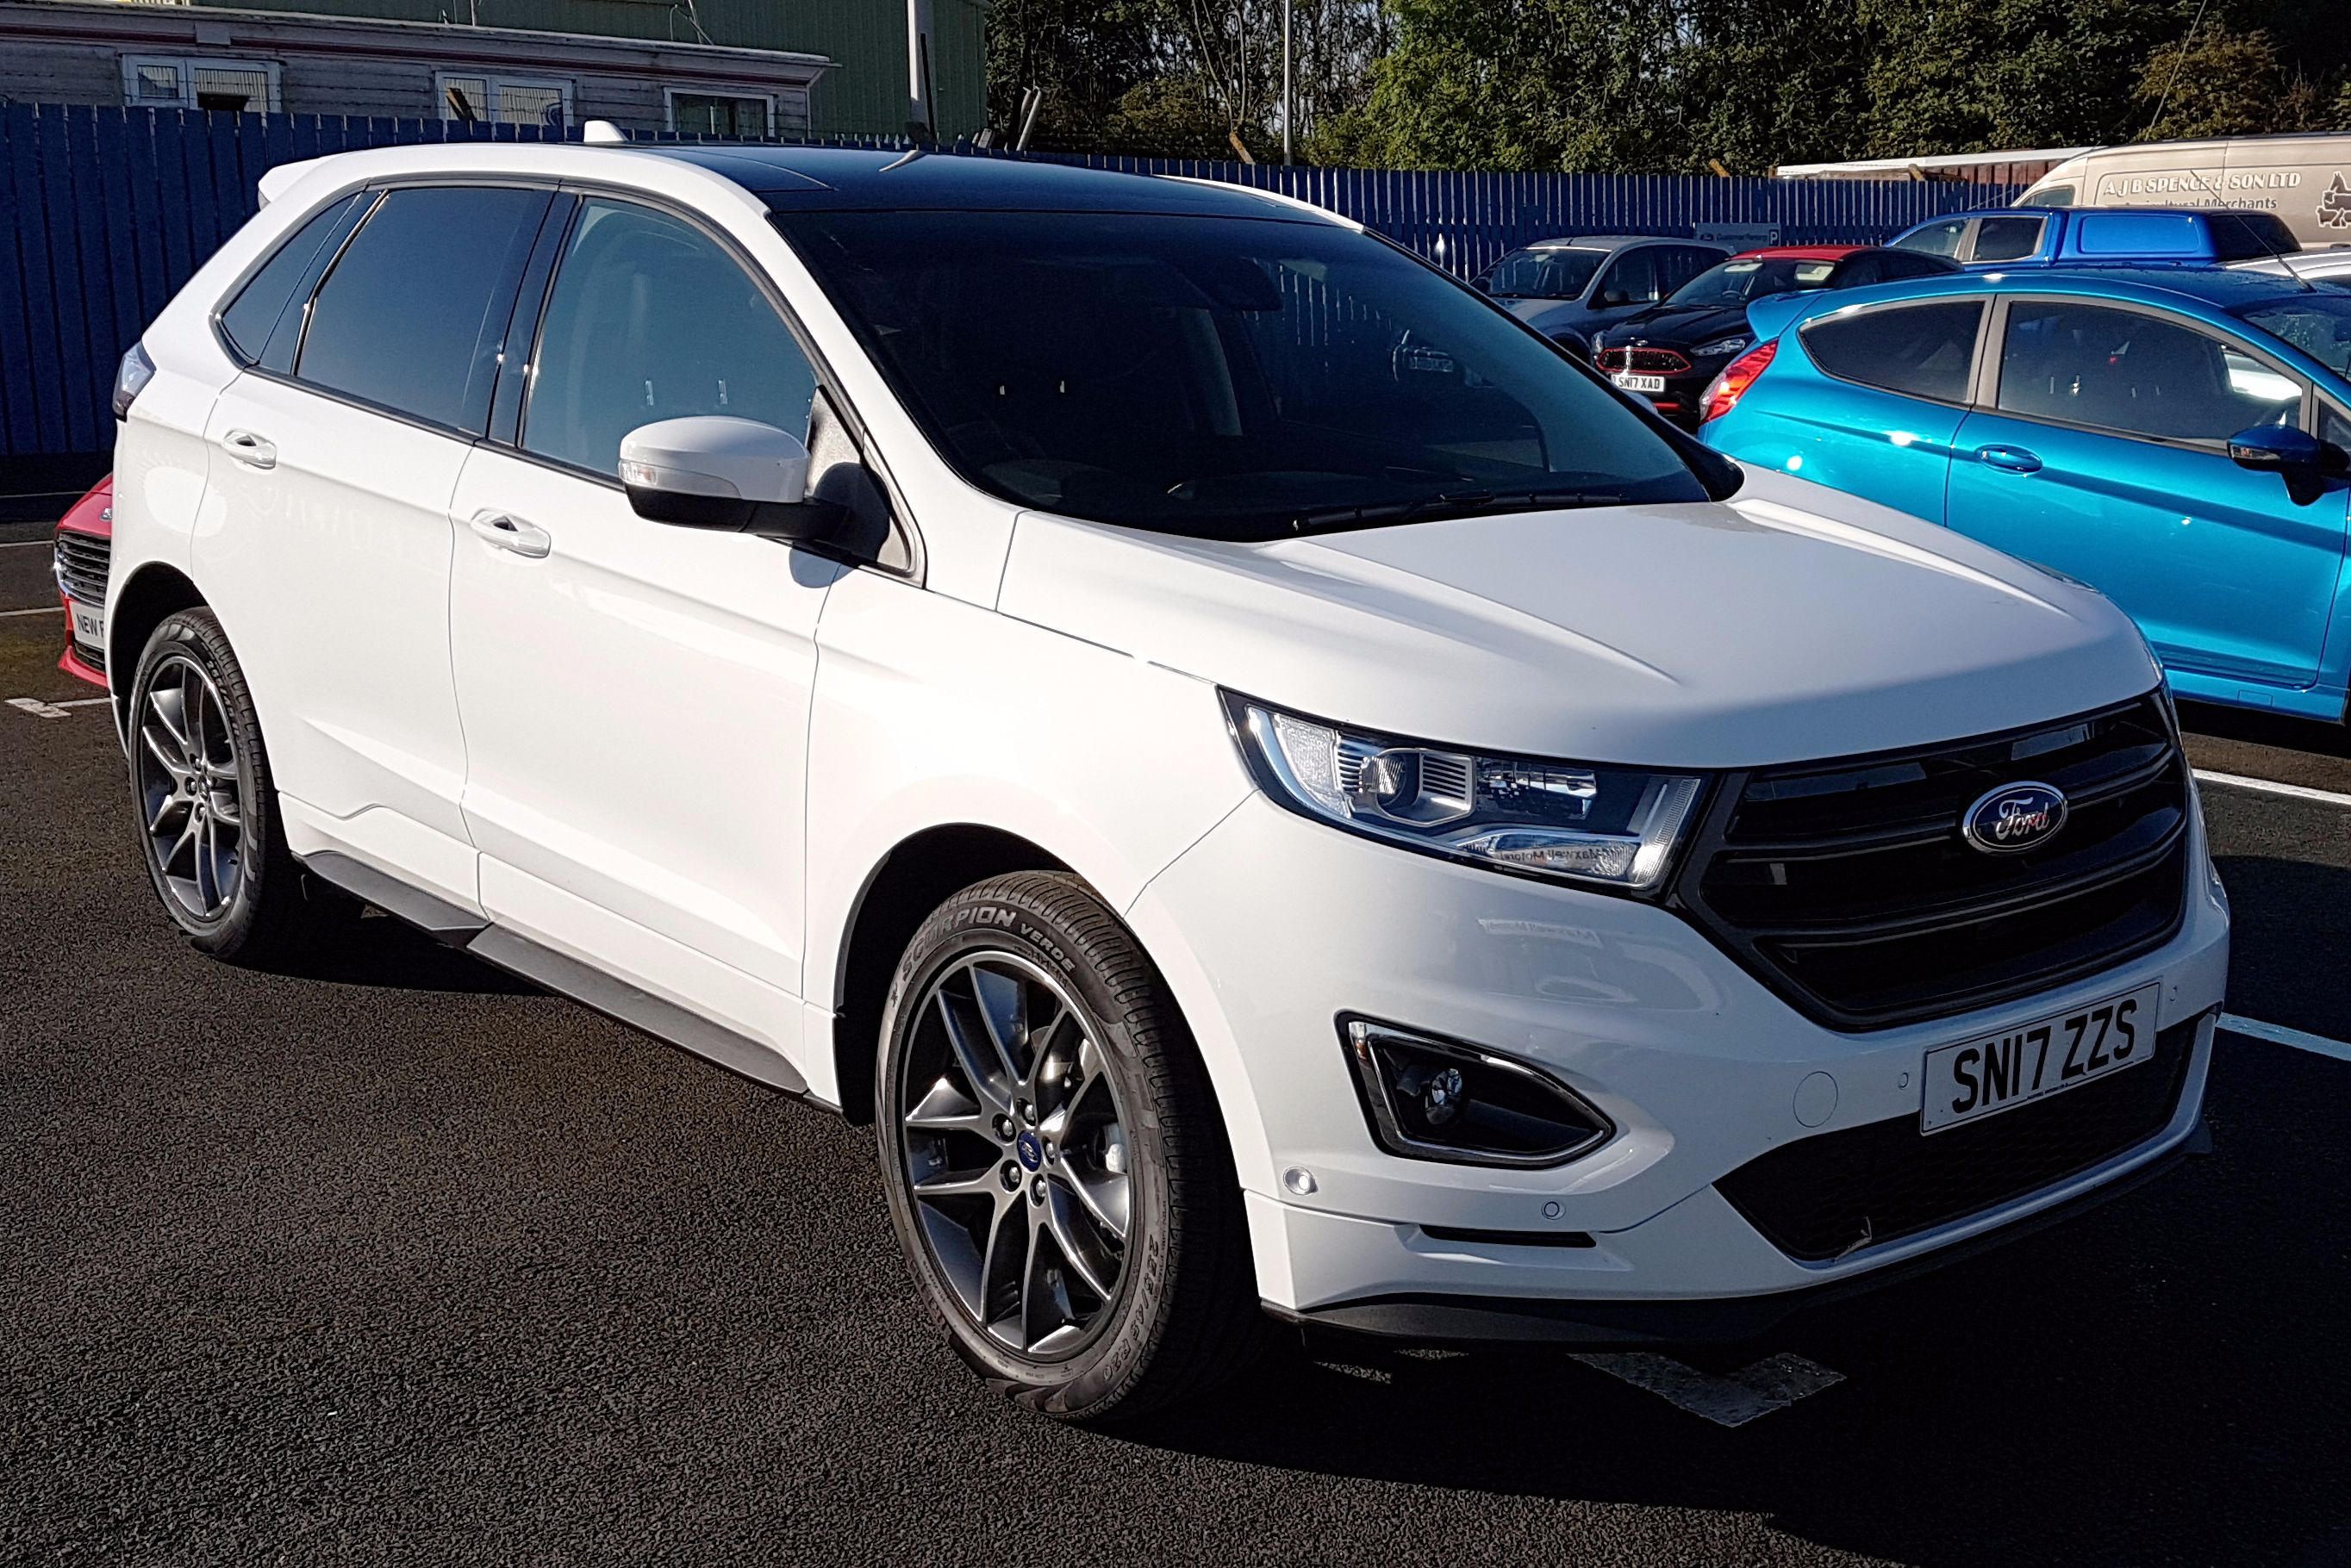 Ford EDGE 2.0 TDCi 210PS Sport Powershift AUTO